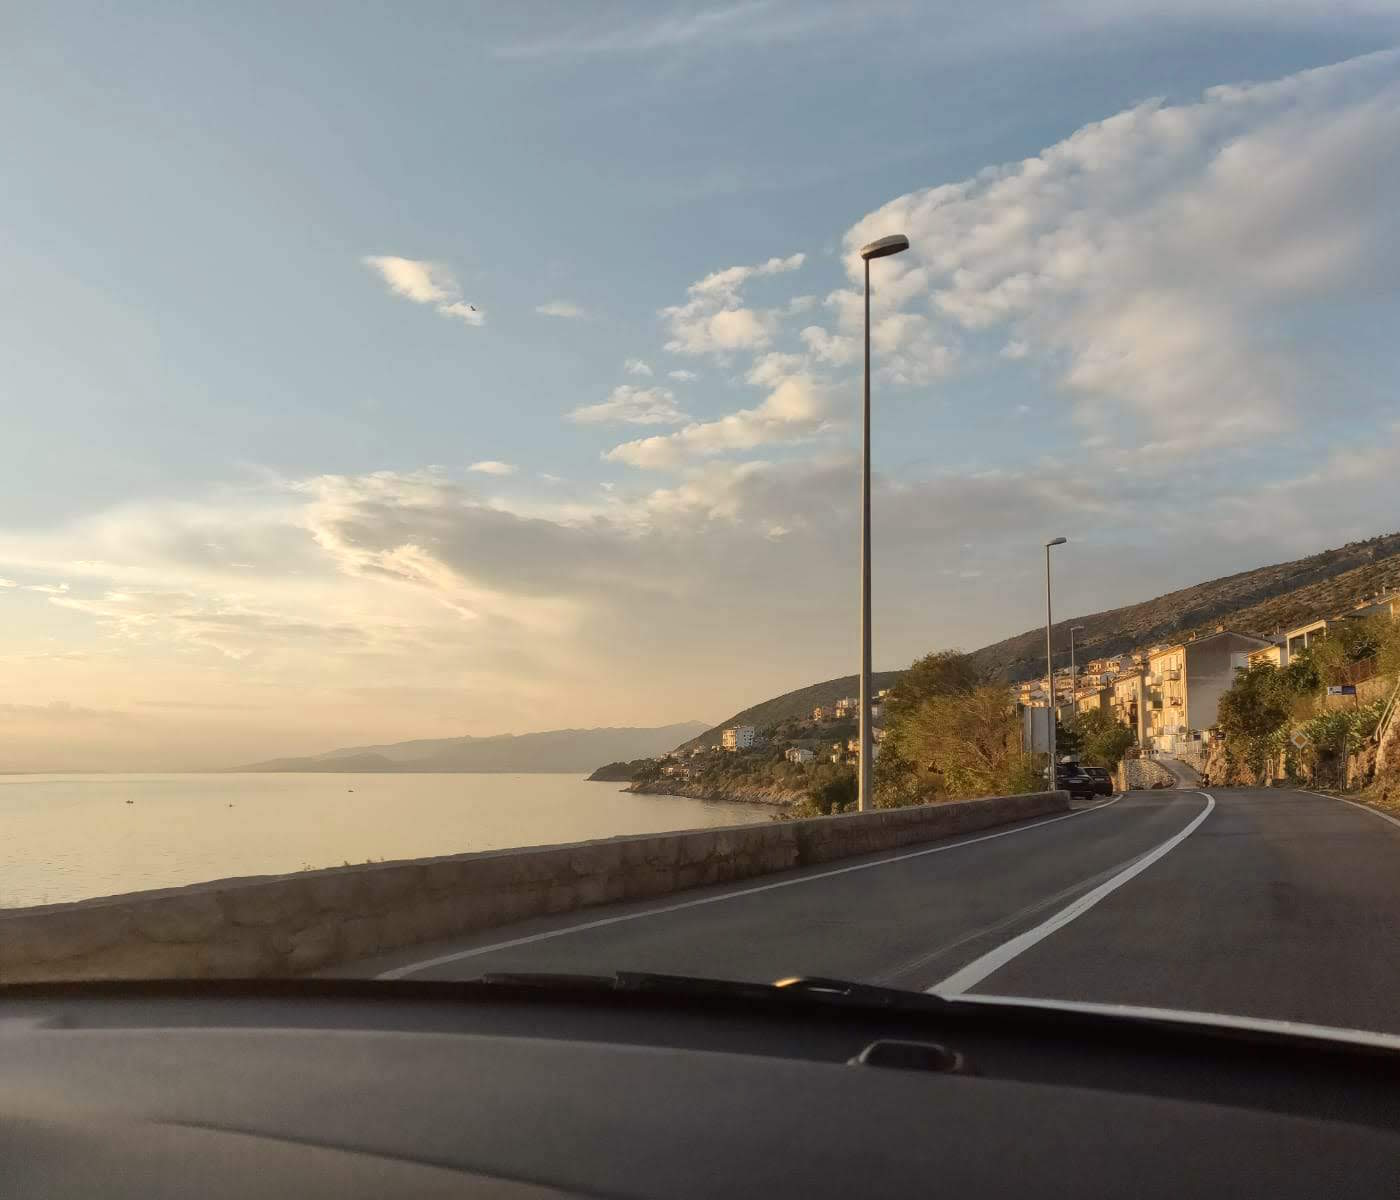 Approaching a town whilst driving on a seaside road